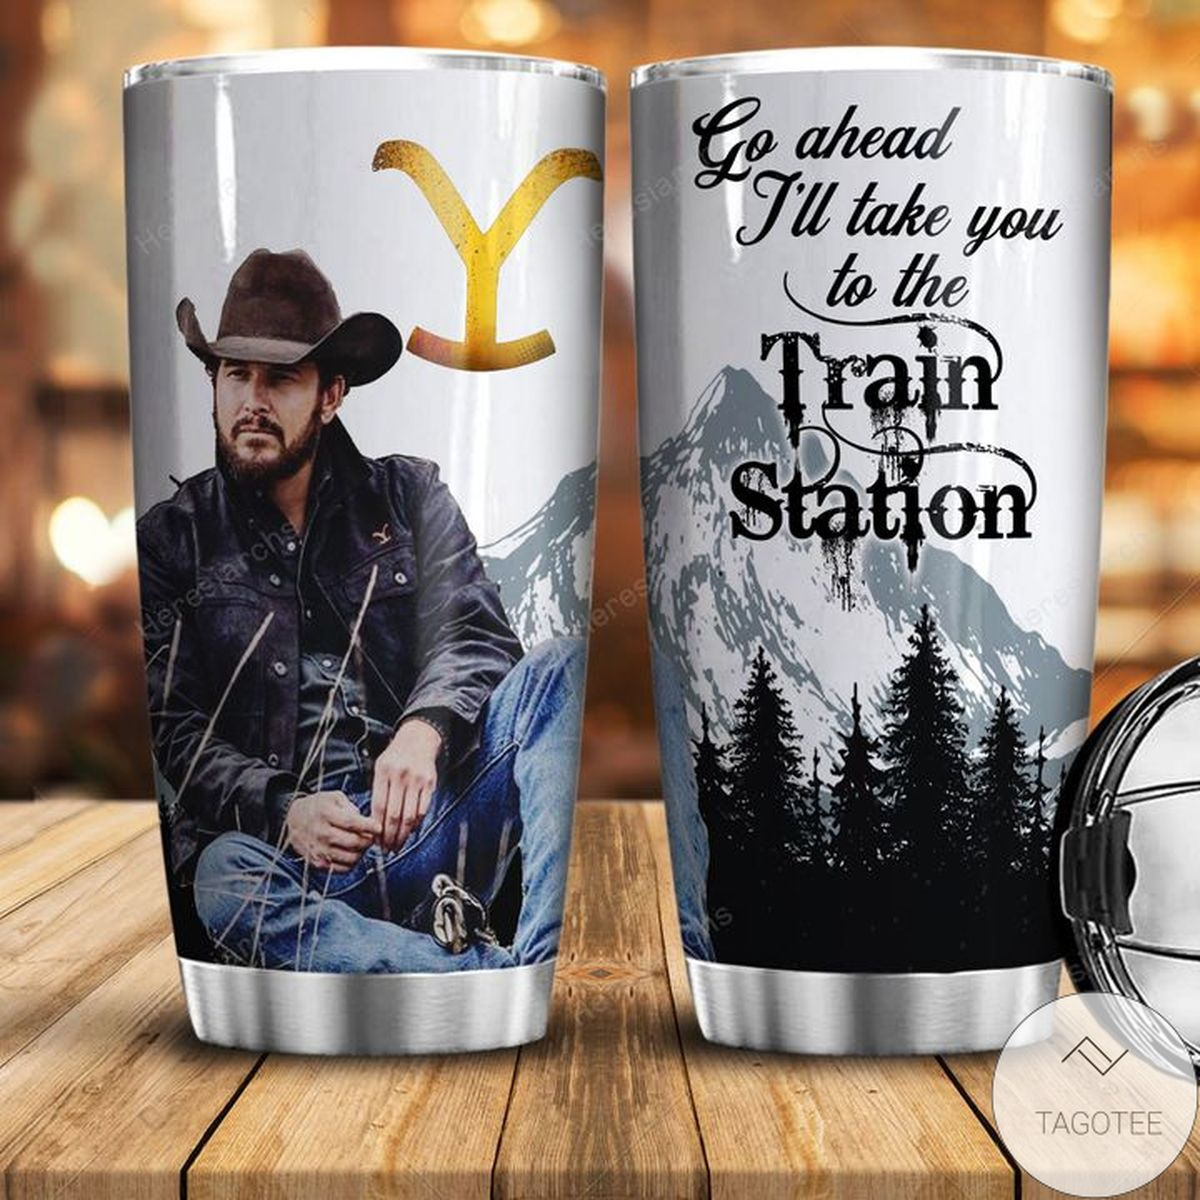 Unique Cowboy Film Go Ahead Till I Take You To The Train Station Tumbler